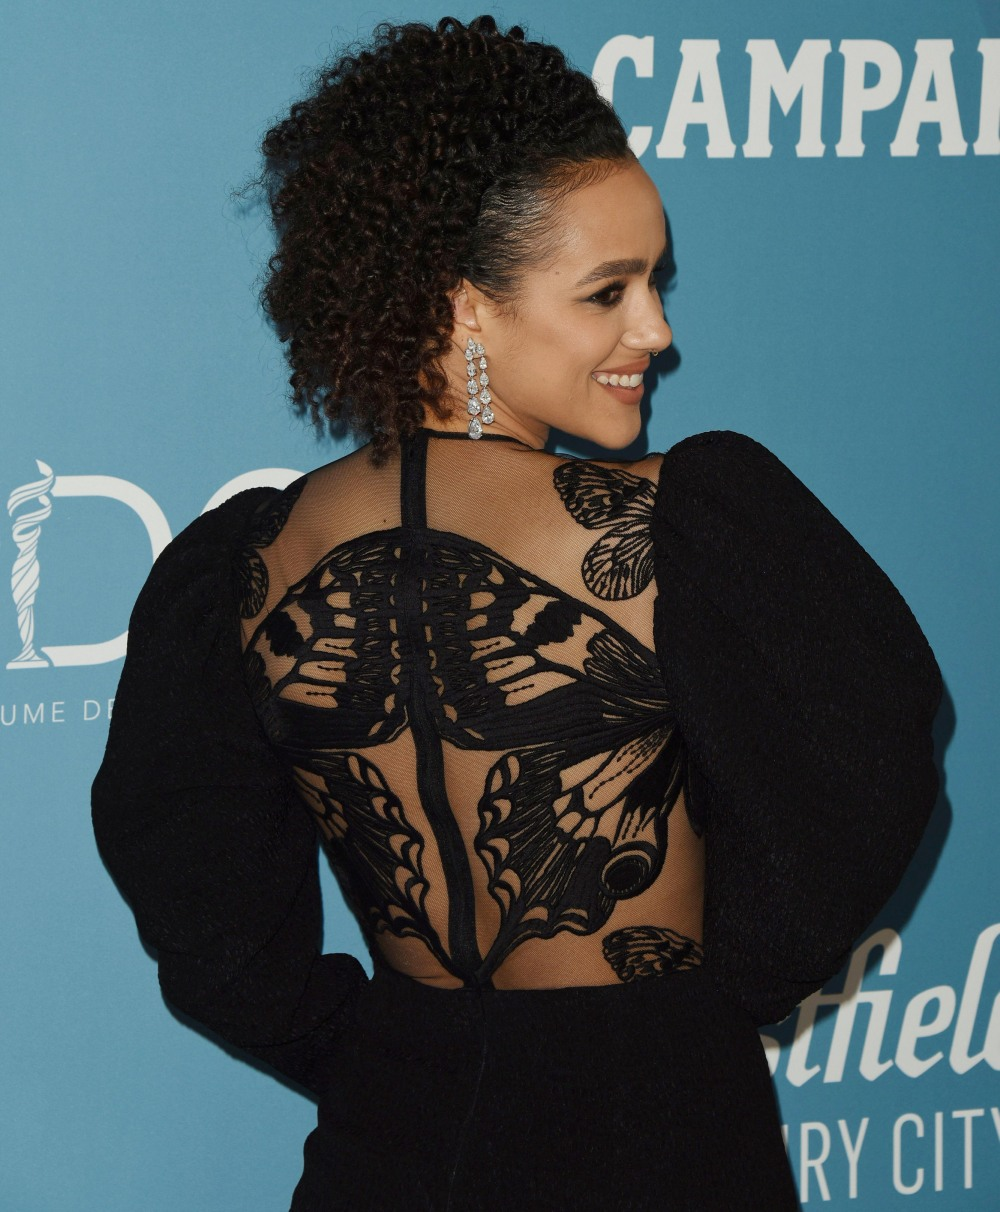 Nathalie Emmanuel attends the 22nd CDGA (Costume Designers Guild Awards) at The Beverly Hilton Hotel on January 28, 2020 in Beverly Hills, California© Jill Johnson/jpistudios.com